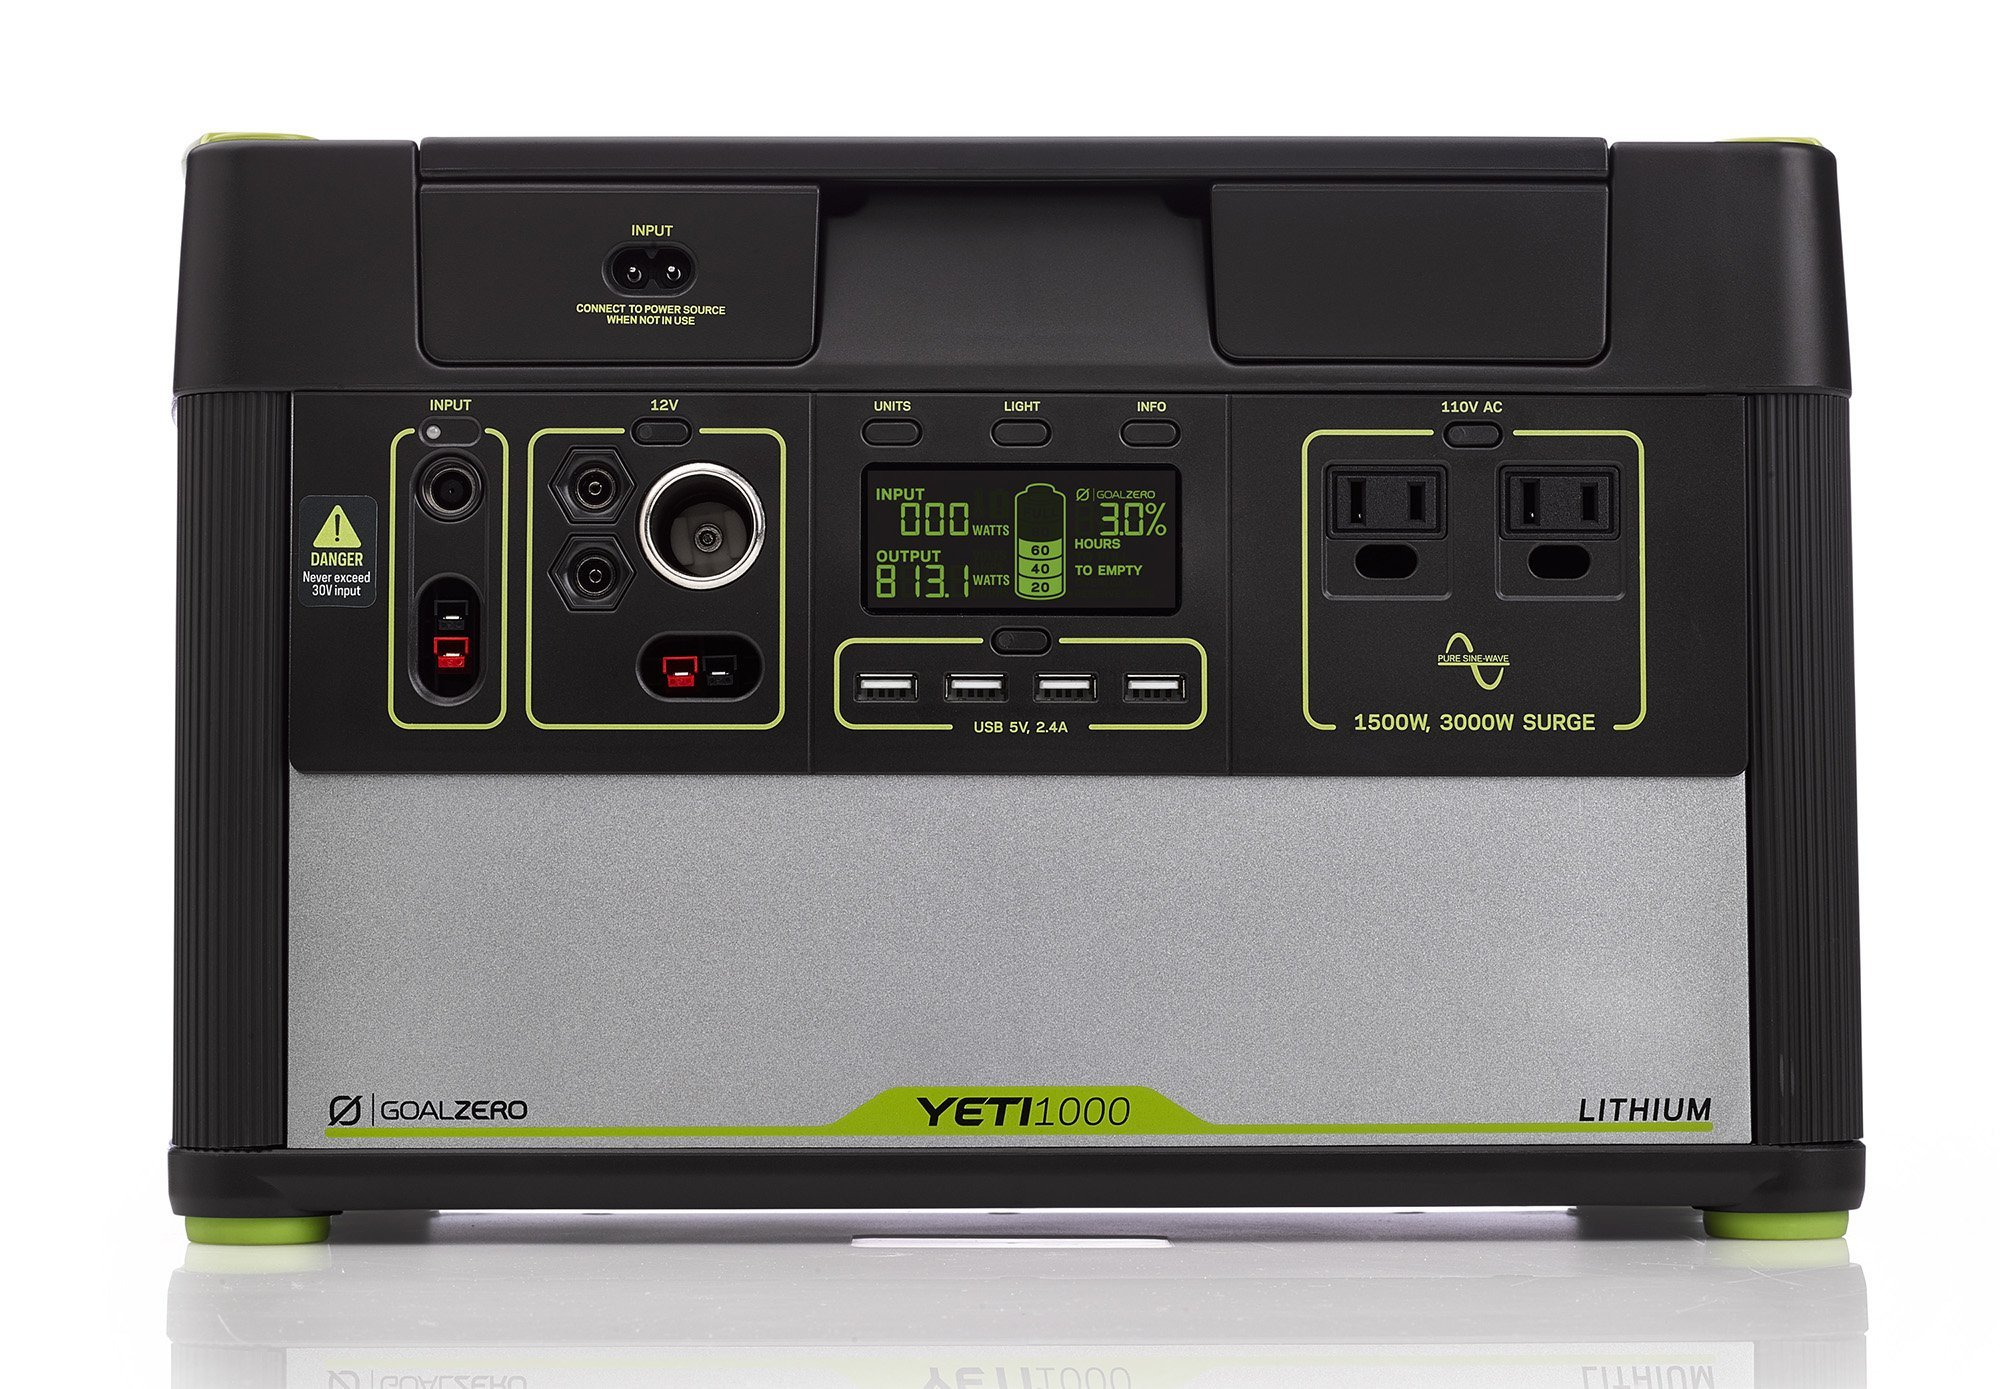 Goal Zero Yeti 1000 Lithium Portable Power Station, 1045Wh Silent Gas Free Generator Alternative with 1500W (3000W Surge) Inverter, 12V and USB Outputs (Certified Refurbished) by Goal Zero